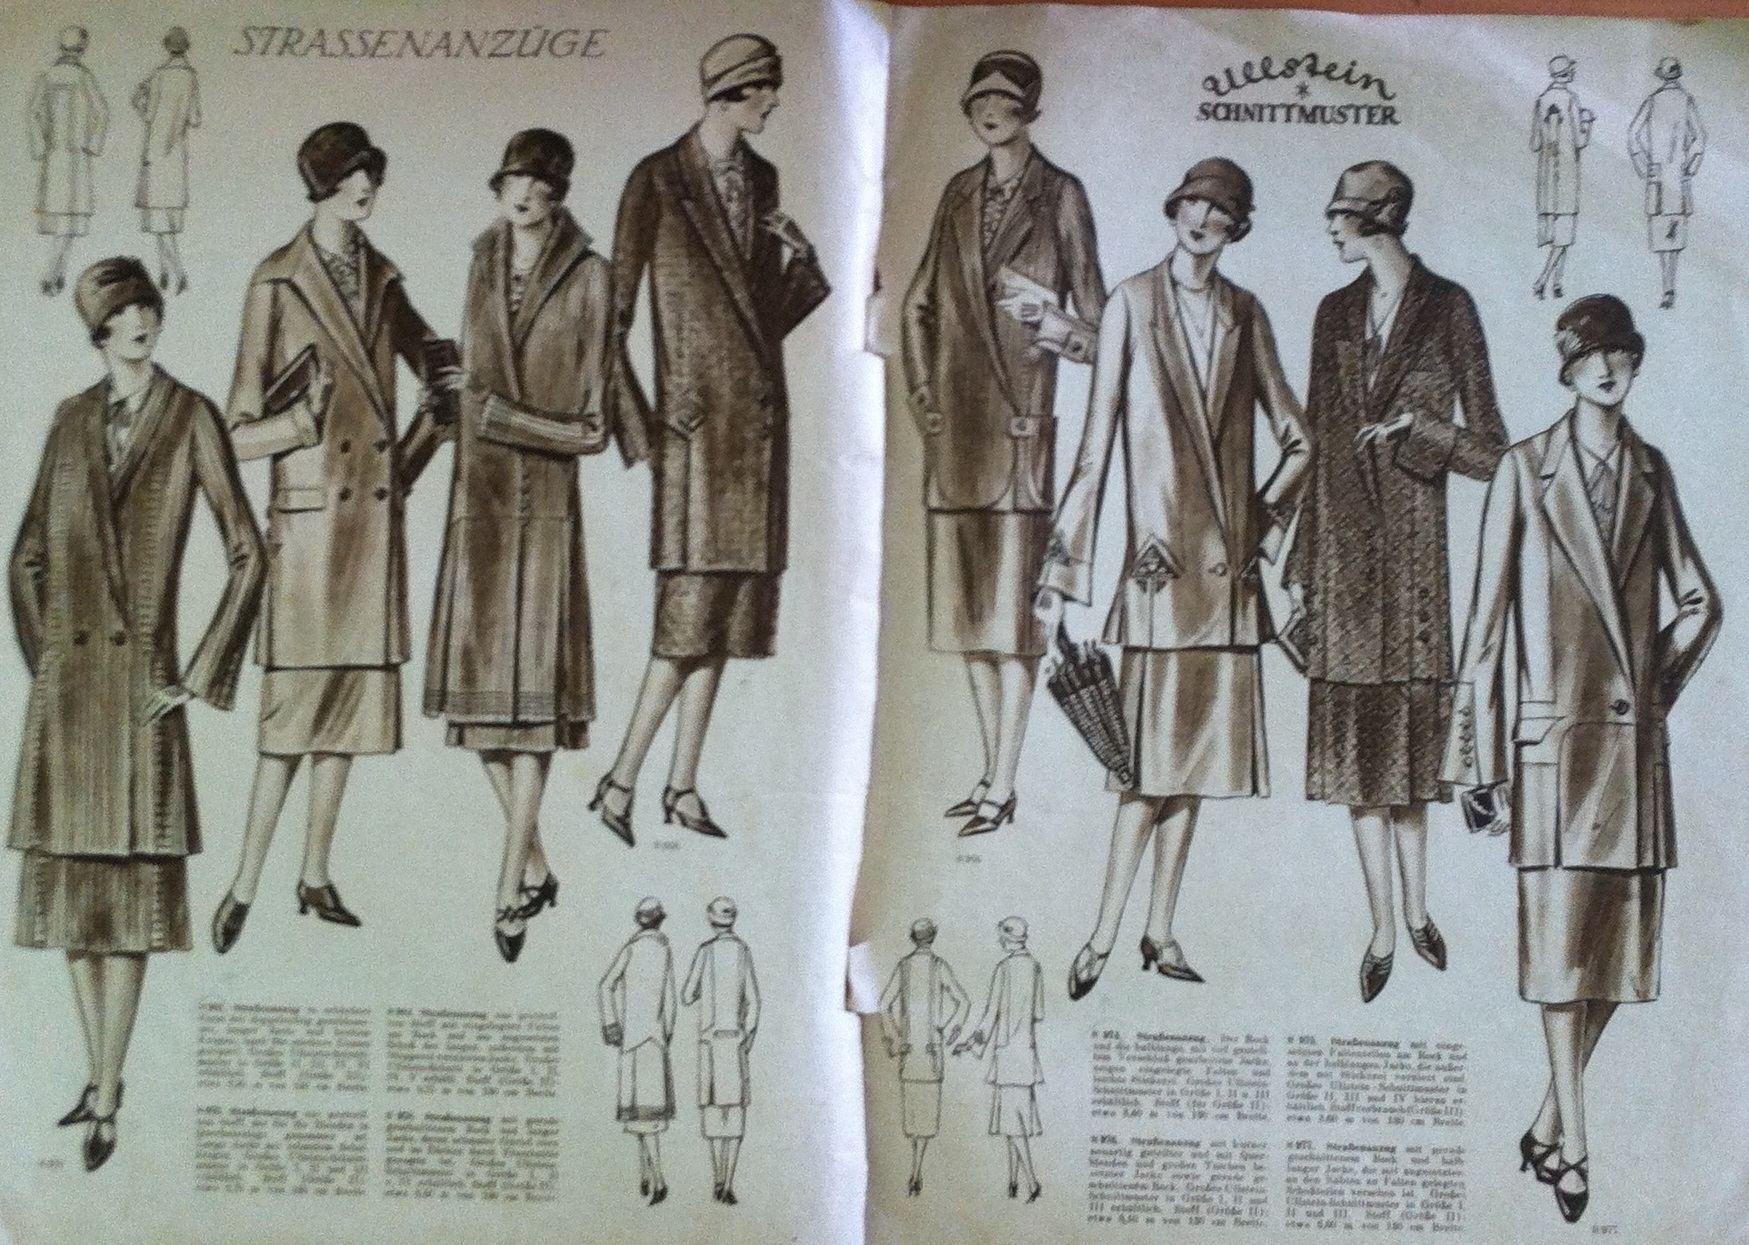 Ullstein Schnittmuster Spring/Summer 1926 | Vintage Sewing Patterns ...